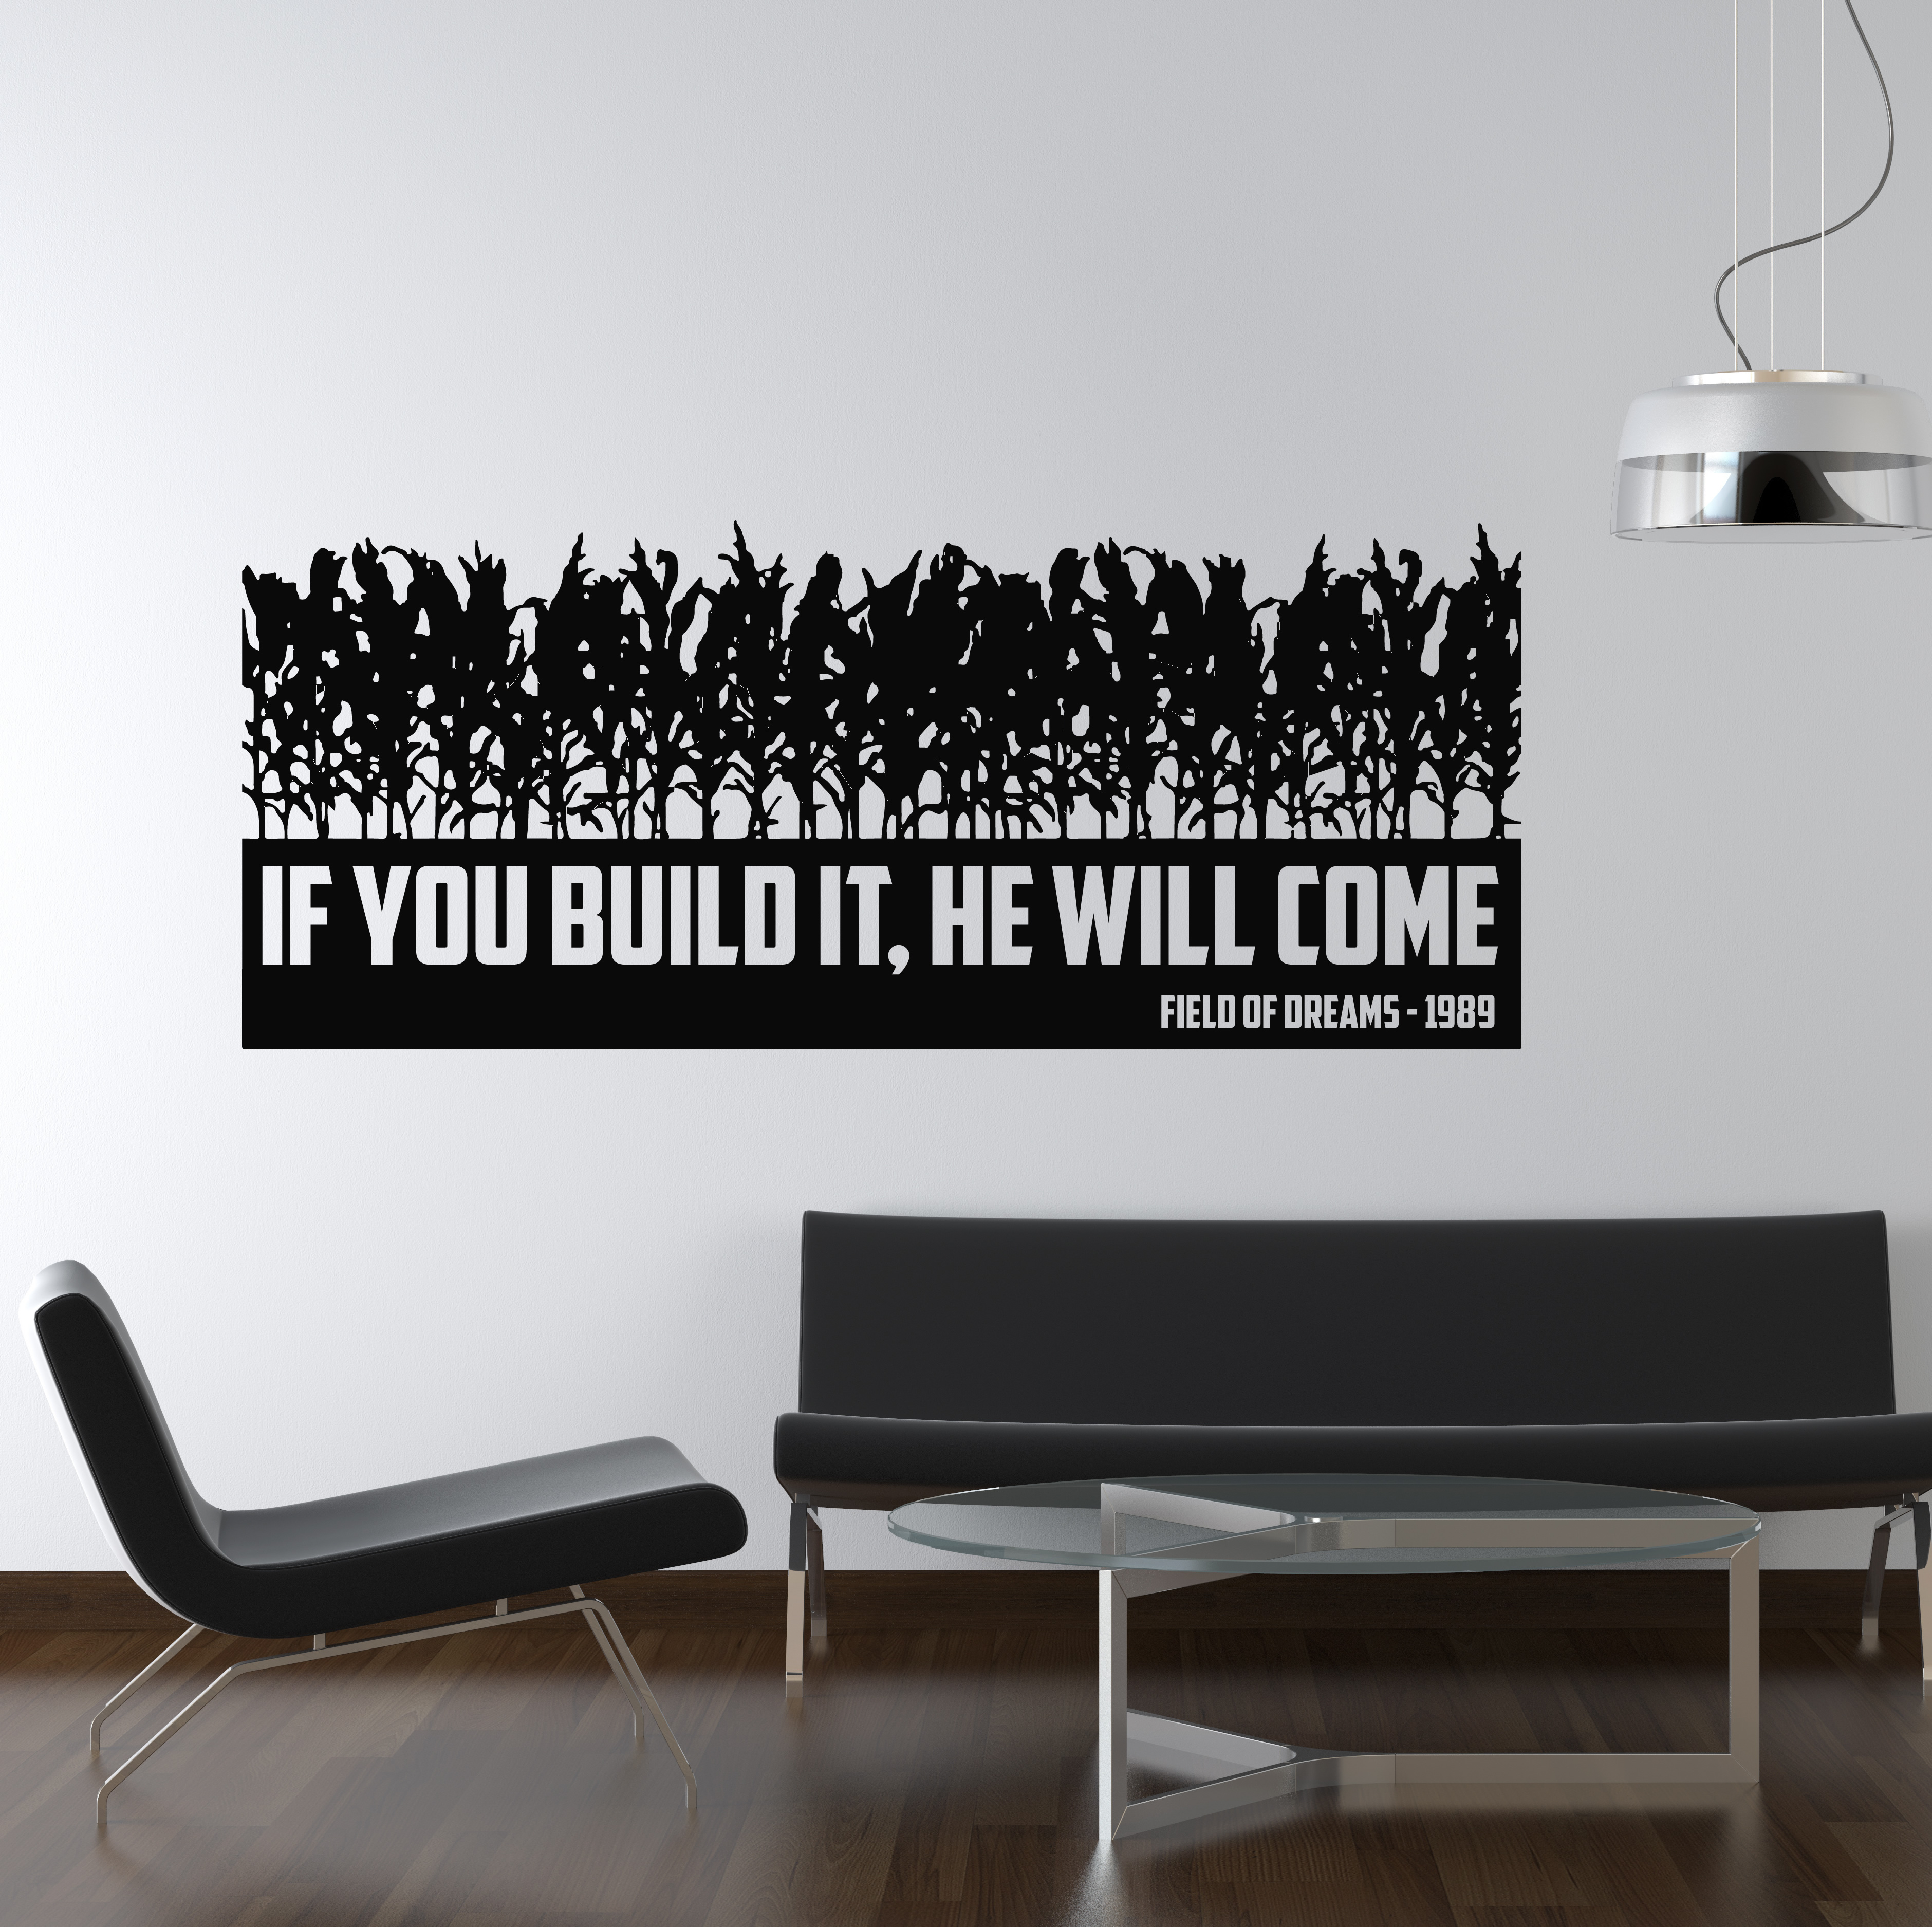 You Build It They Will Come Field Of Dreams TV Movie Wall - How do u put up a wall sticker